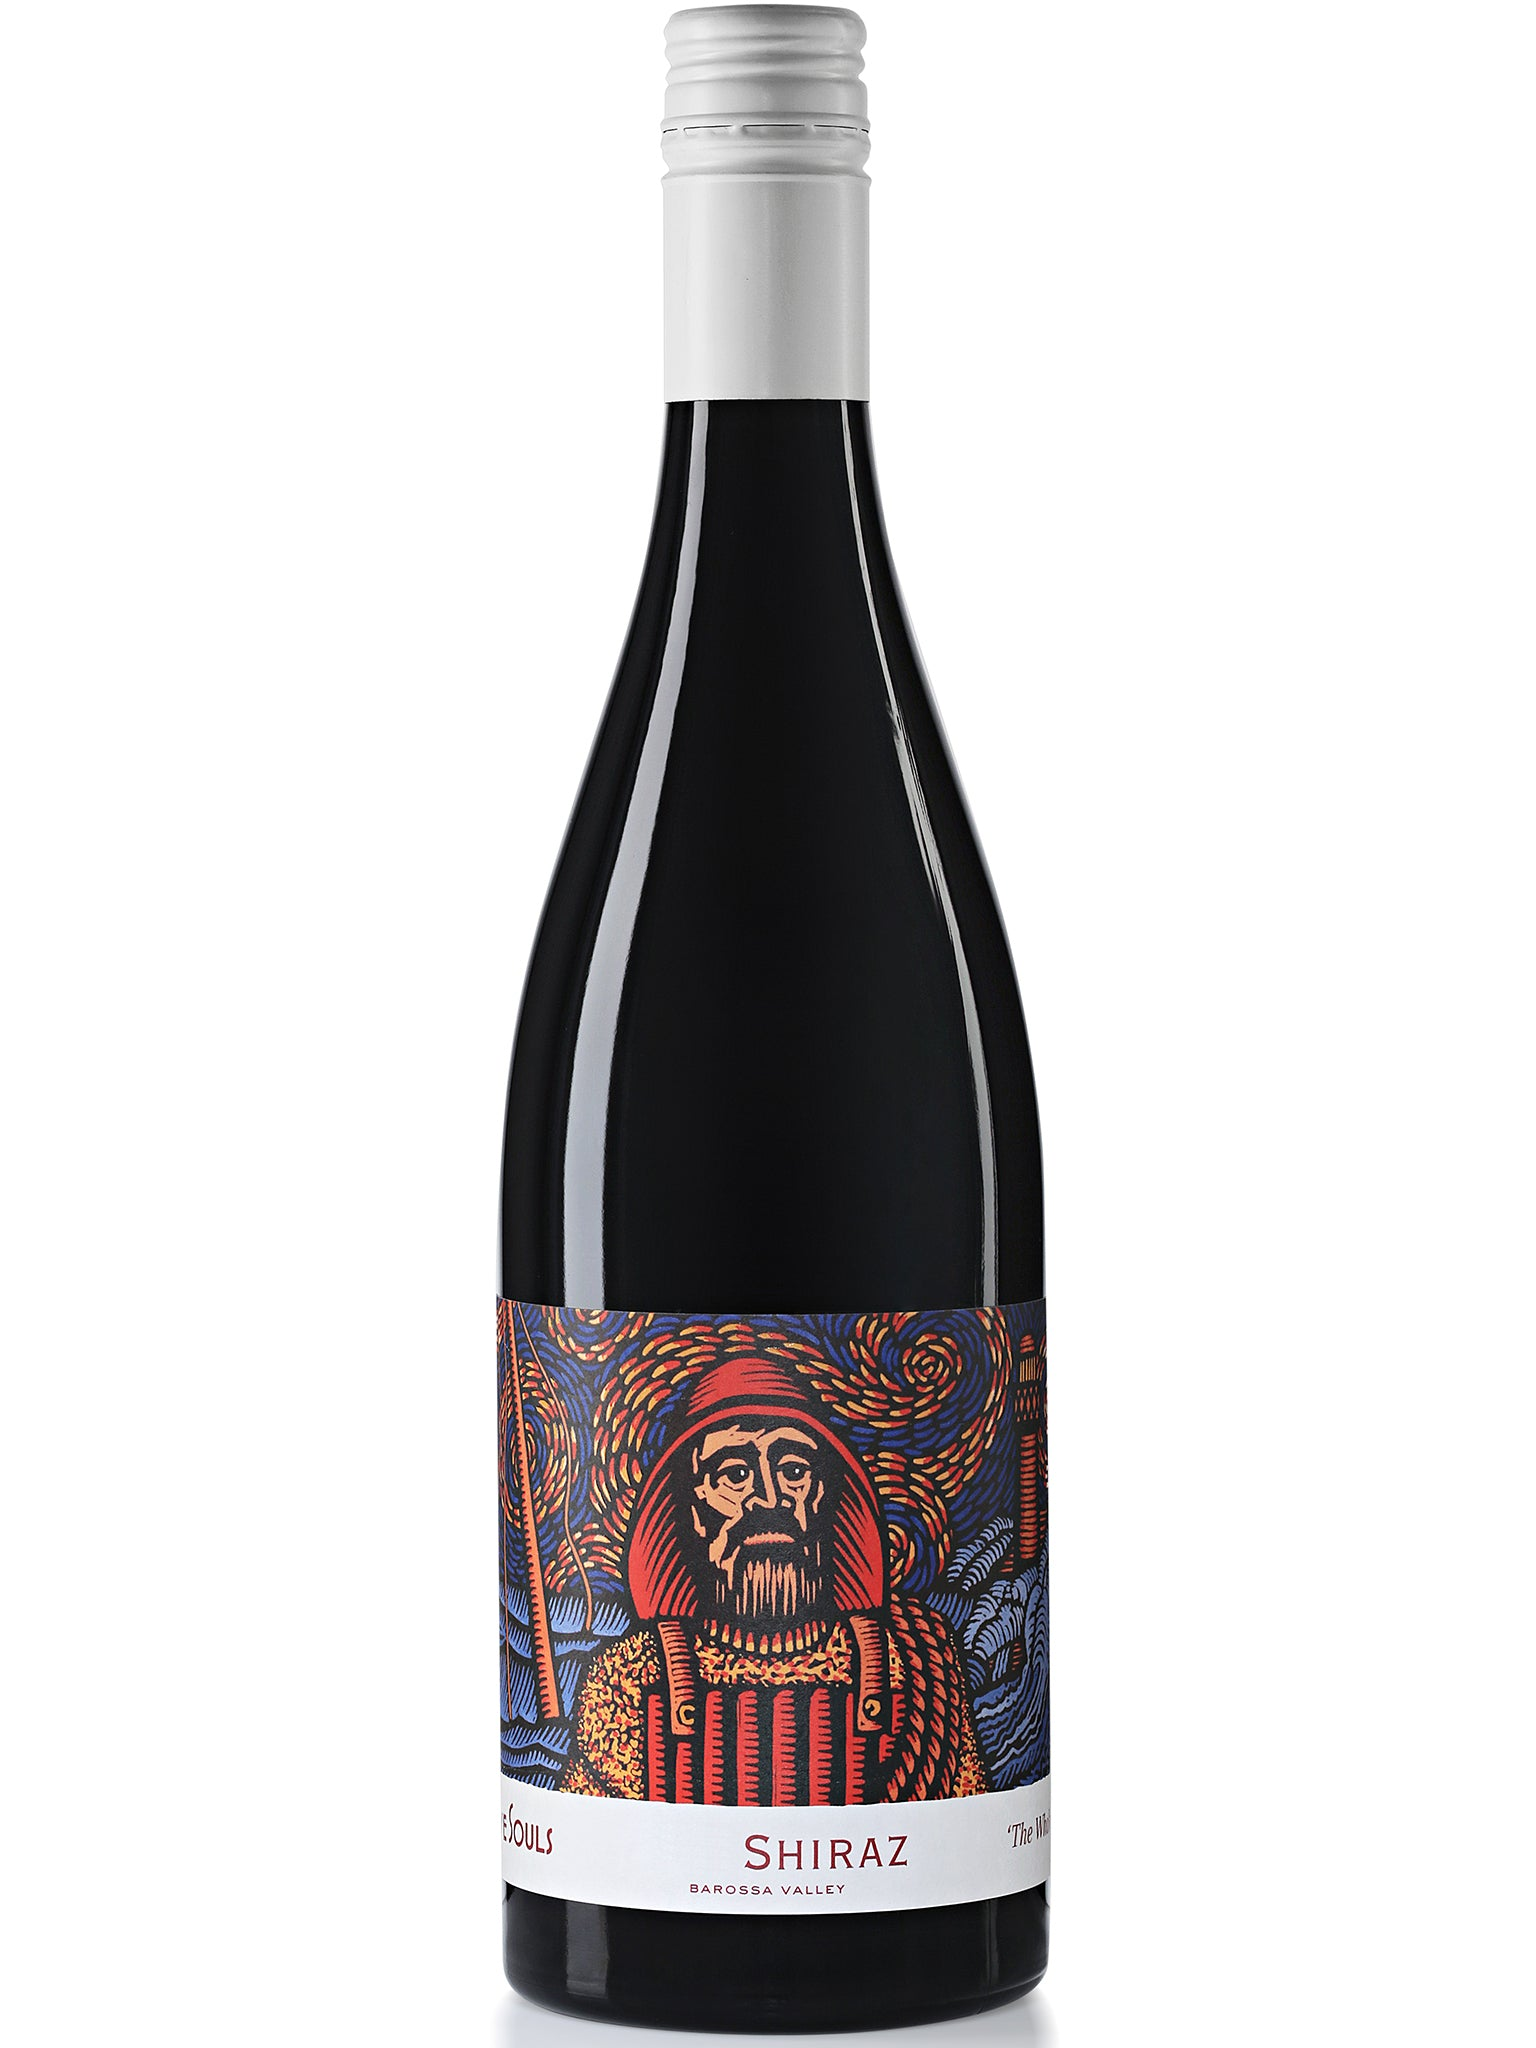 Brave Souls 'The Whaler' Shiraz 12pk 2017